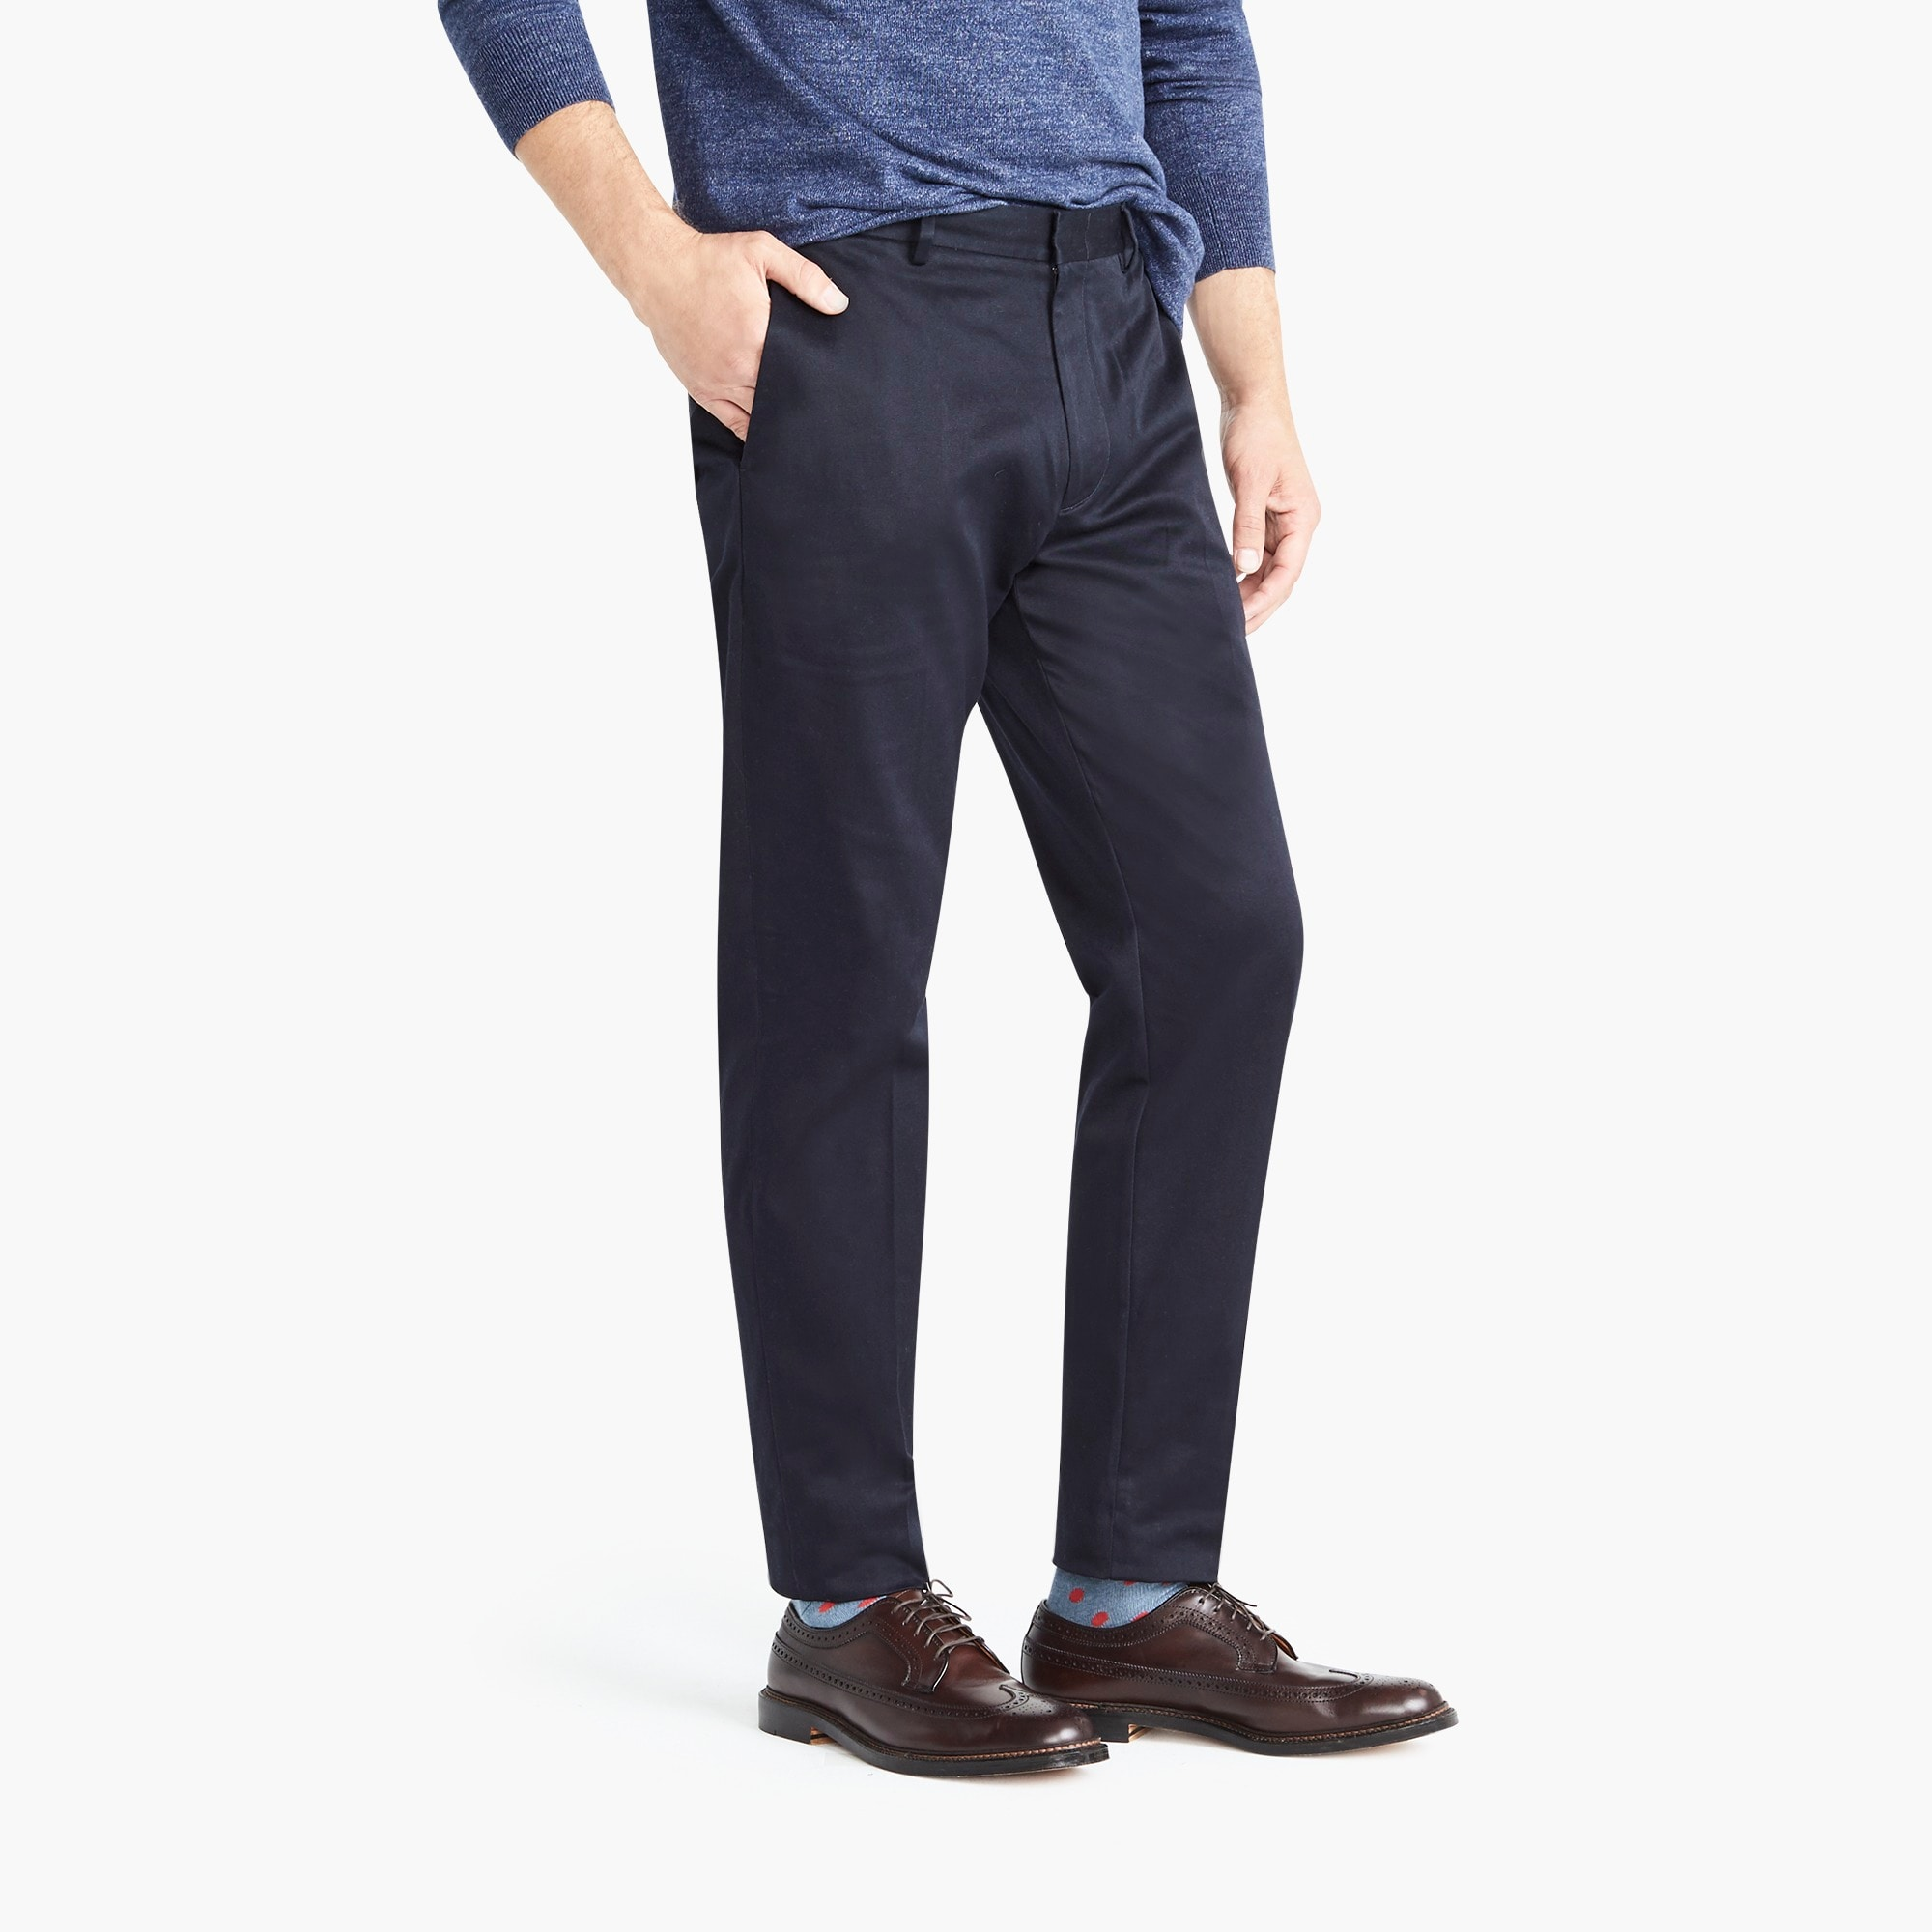 Image 3 for Ludlow Classic-fit pant in stretch chino